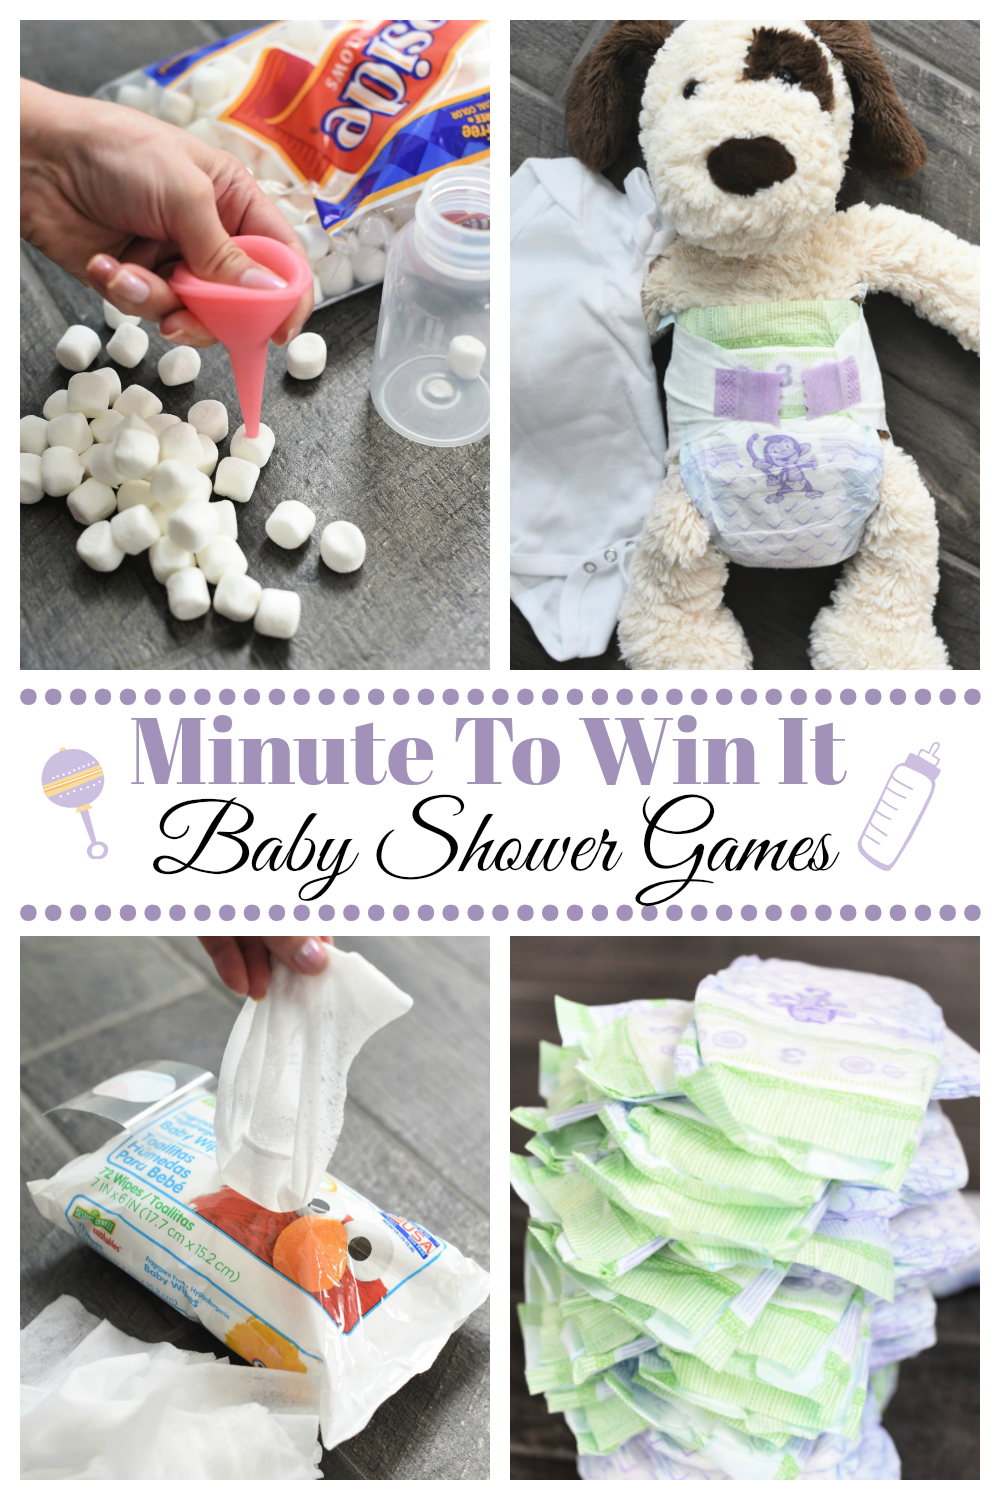 Fun Minute to Win It Baby Shower Party Games-These fun and creative baby shower games will be a huge hit with your guests and they are easy to play! #babyshower #babyshowergames #games #partyideas #minutetowinit